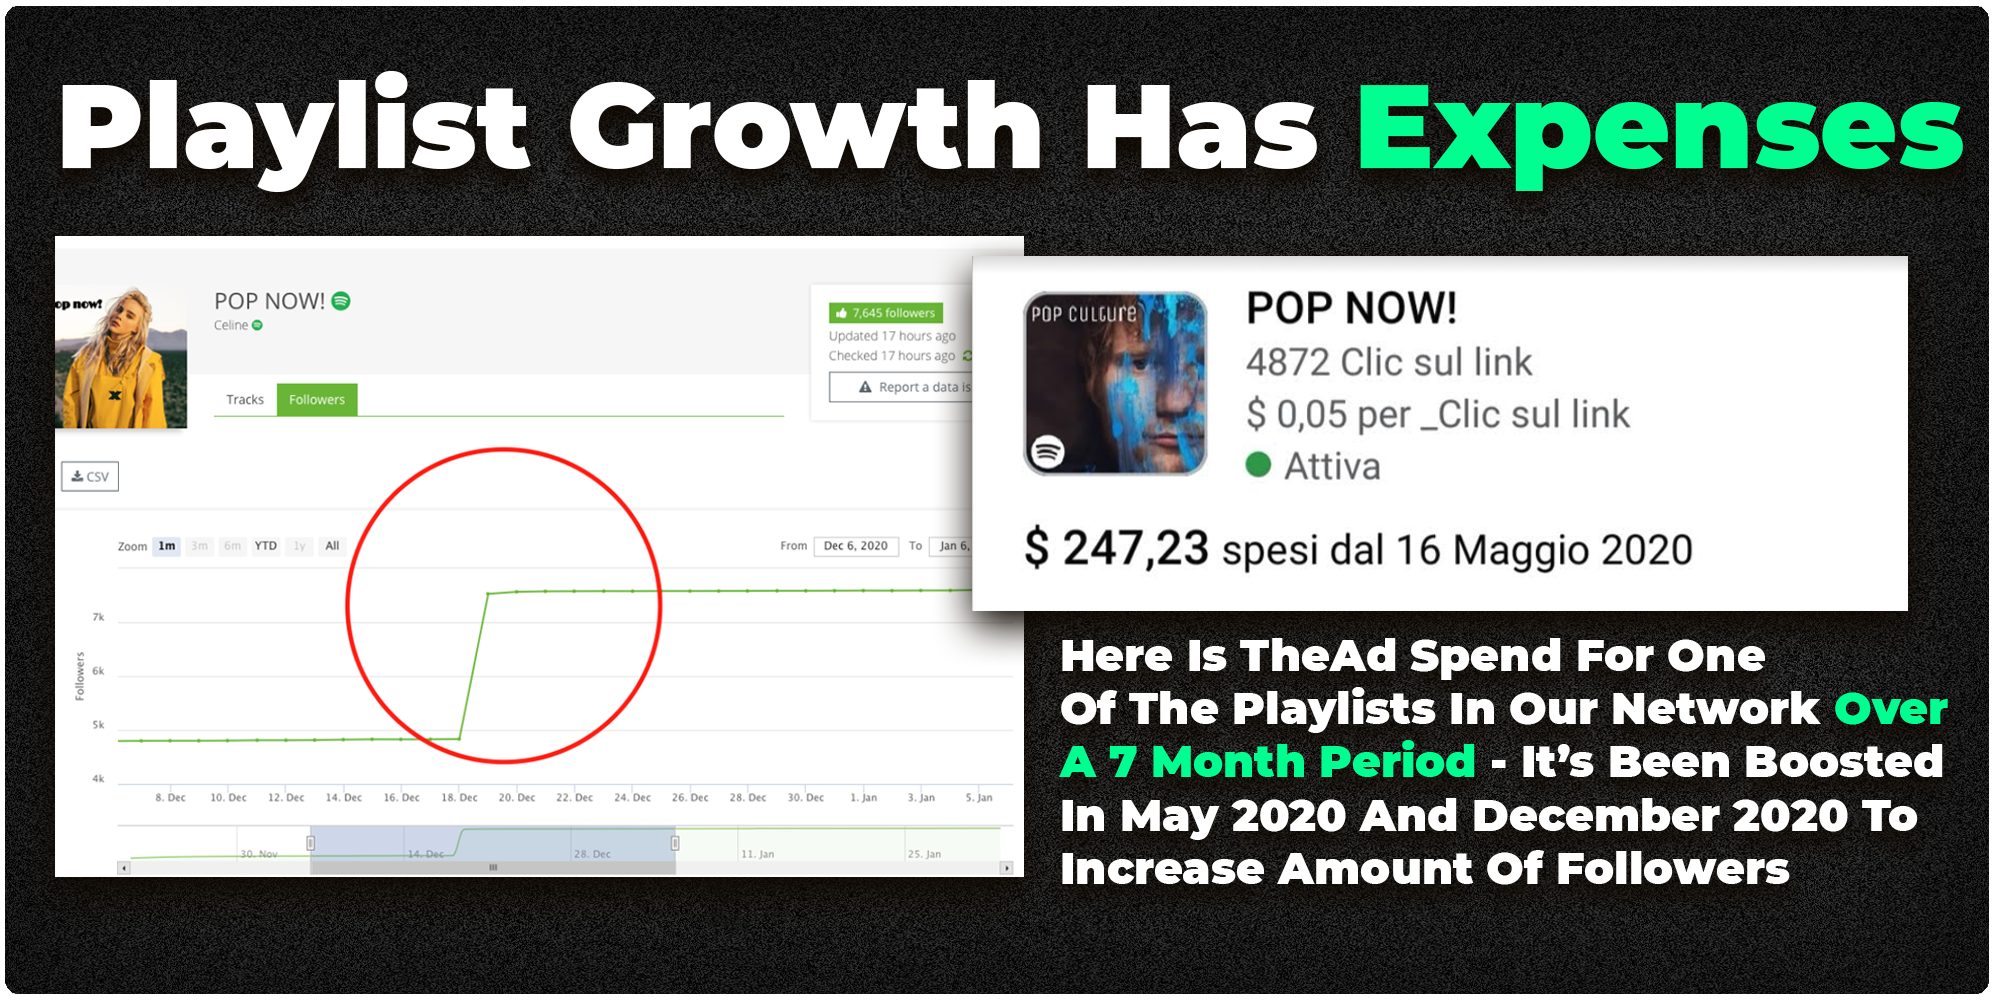 playlsit growth expenses